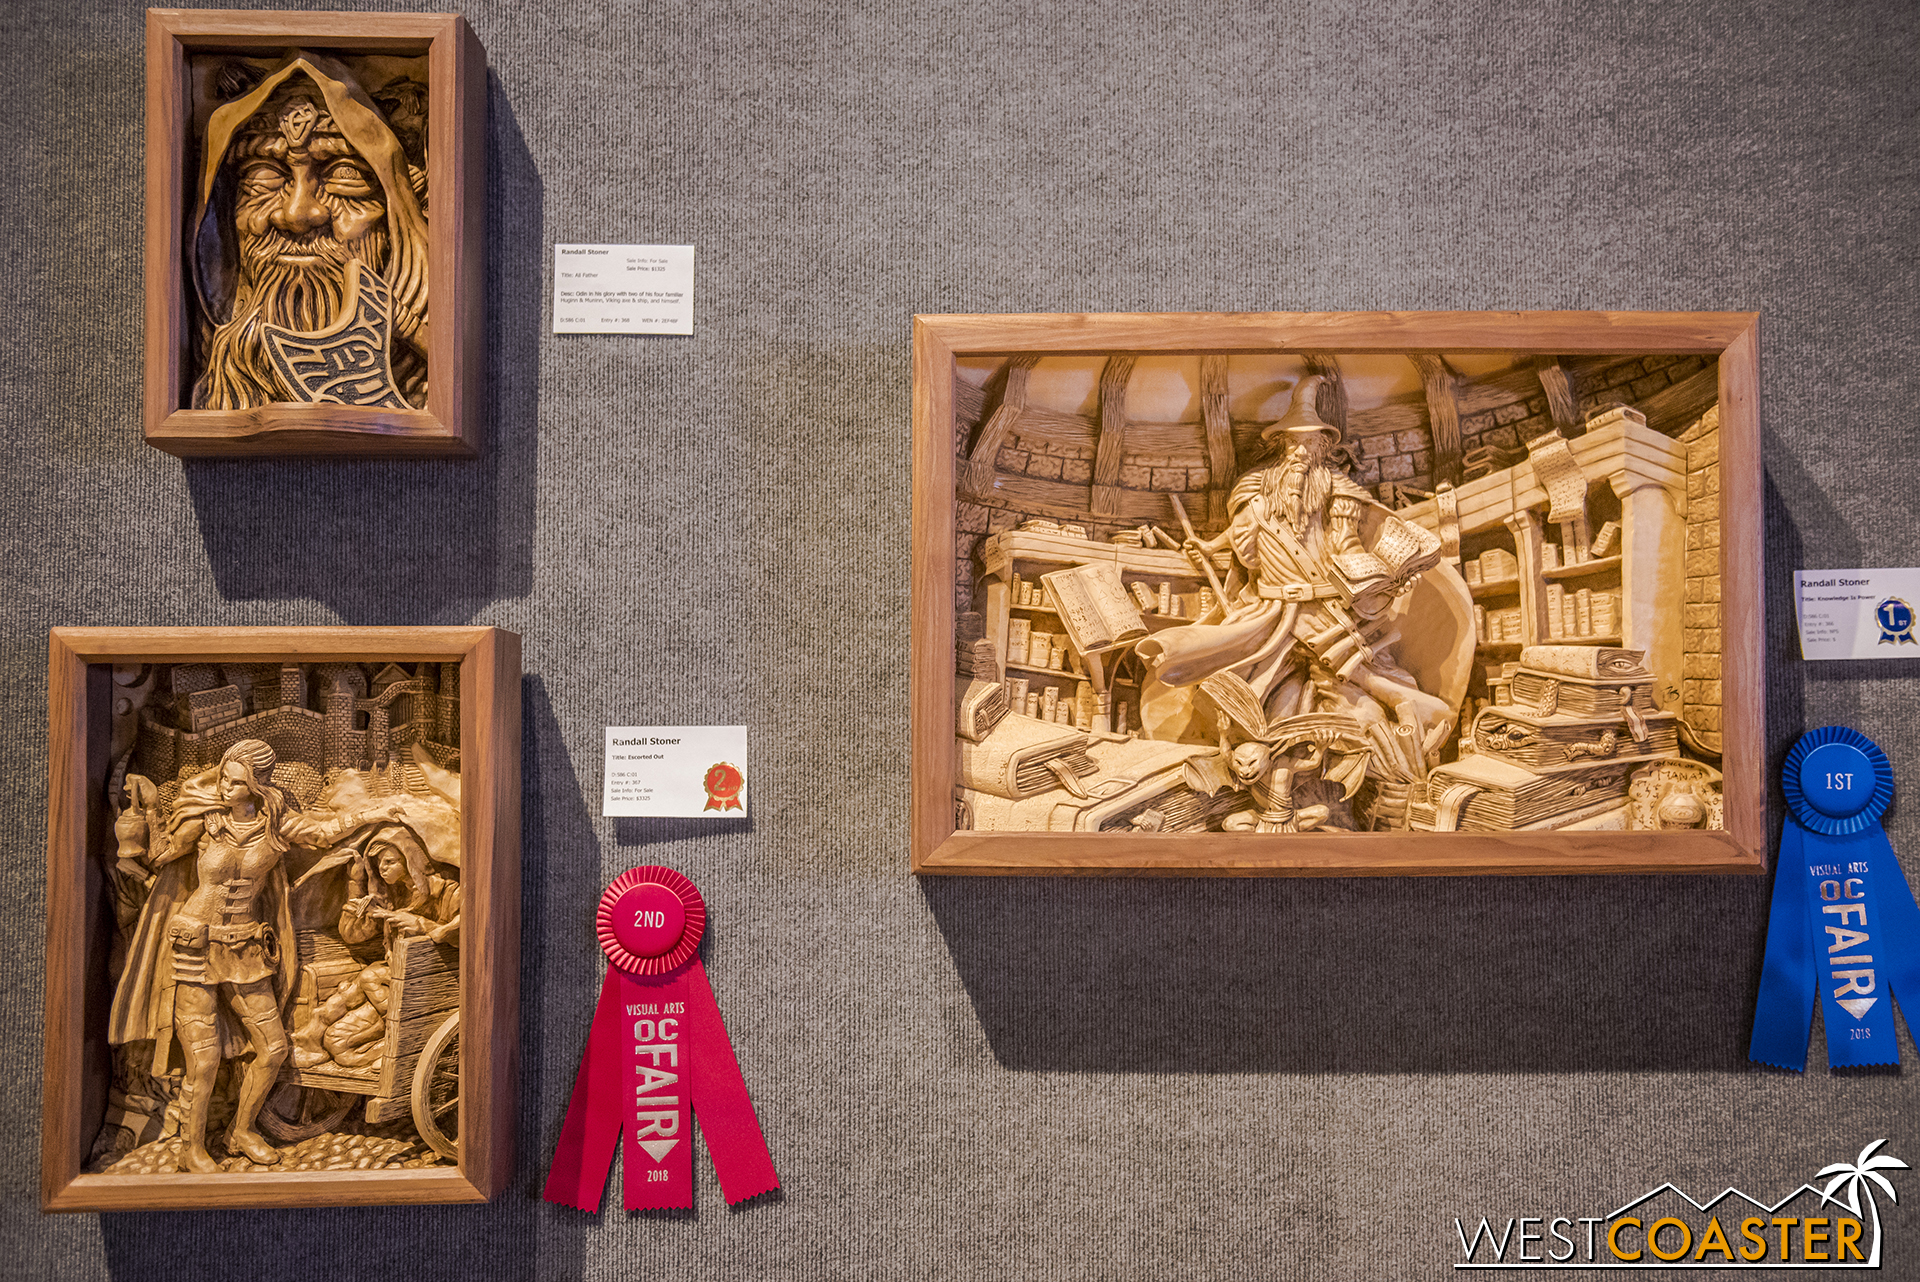 There was also an extensive woodworking exhibit in the same space, on the east side.